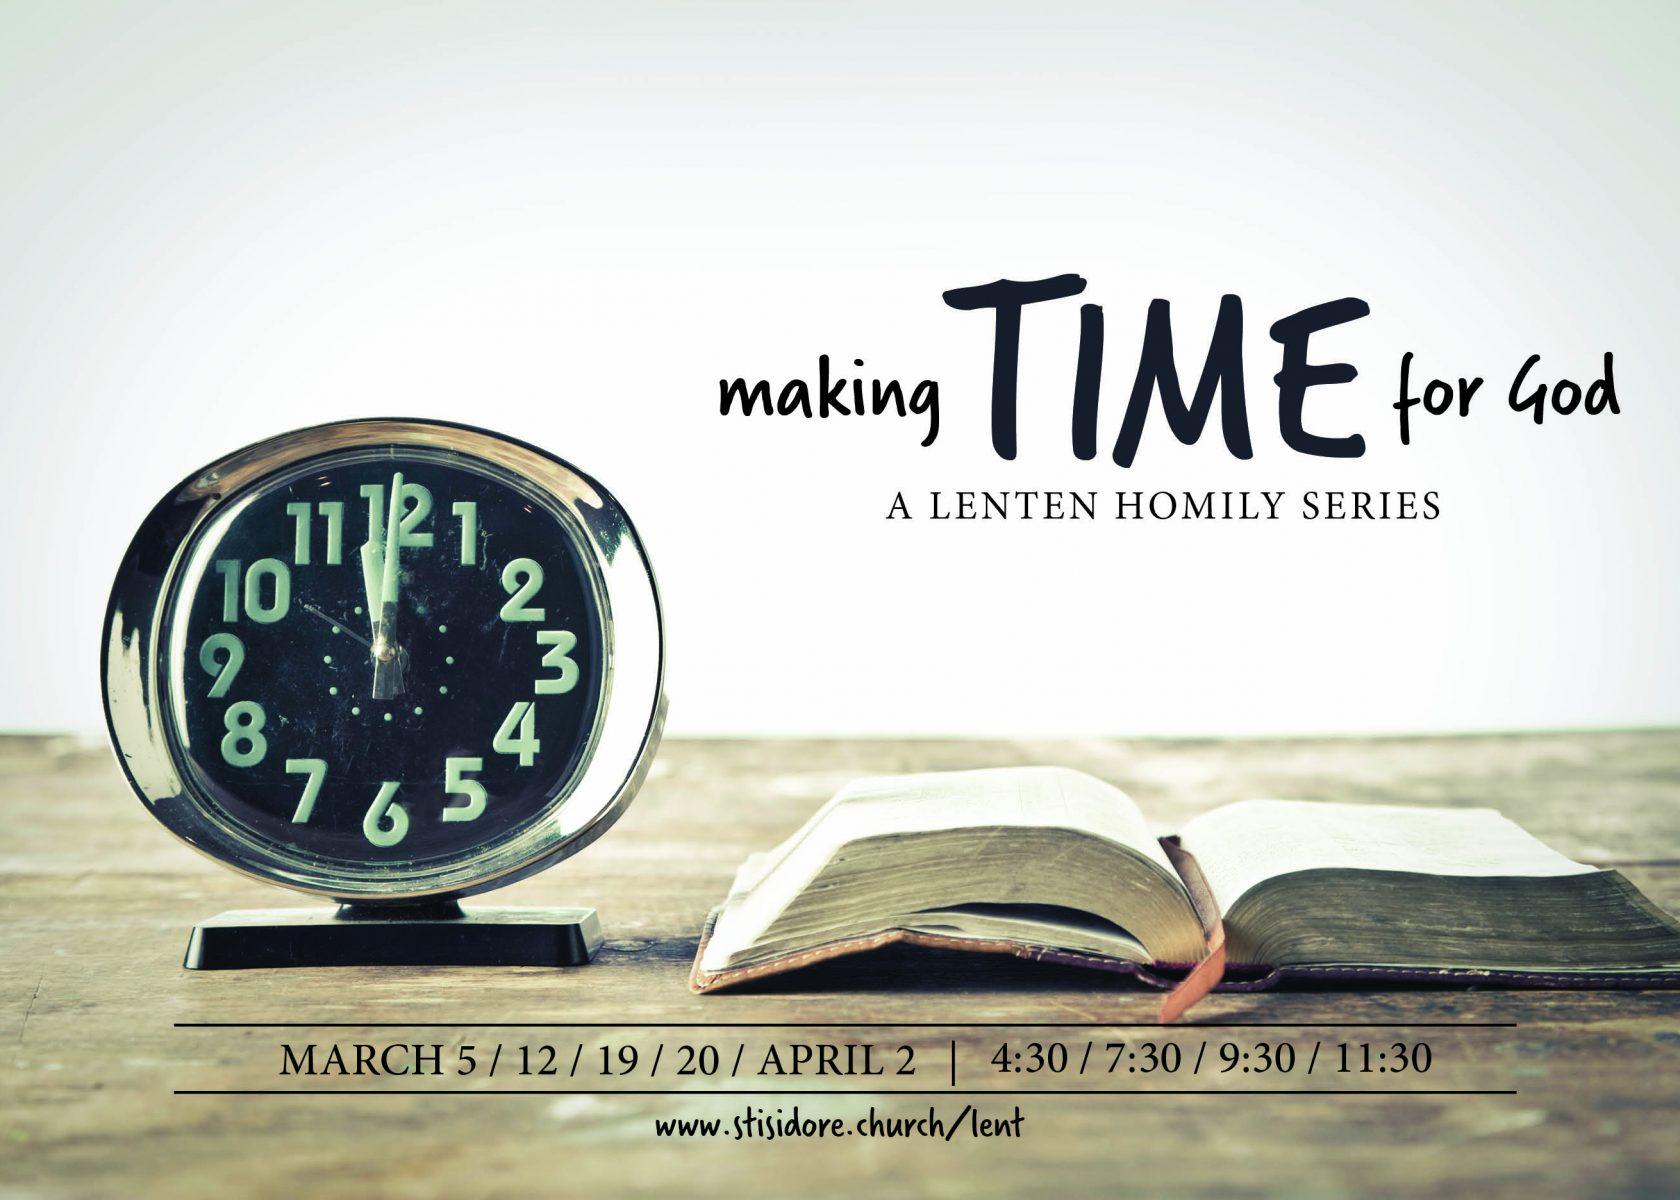 Making Time for God